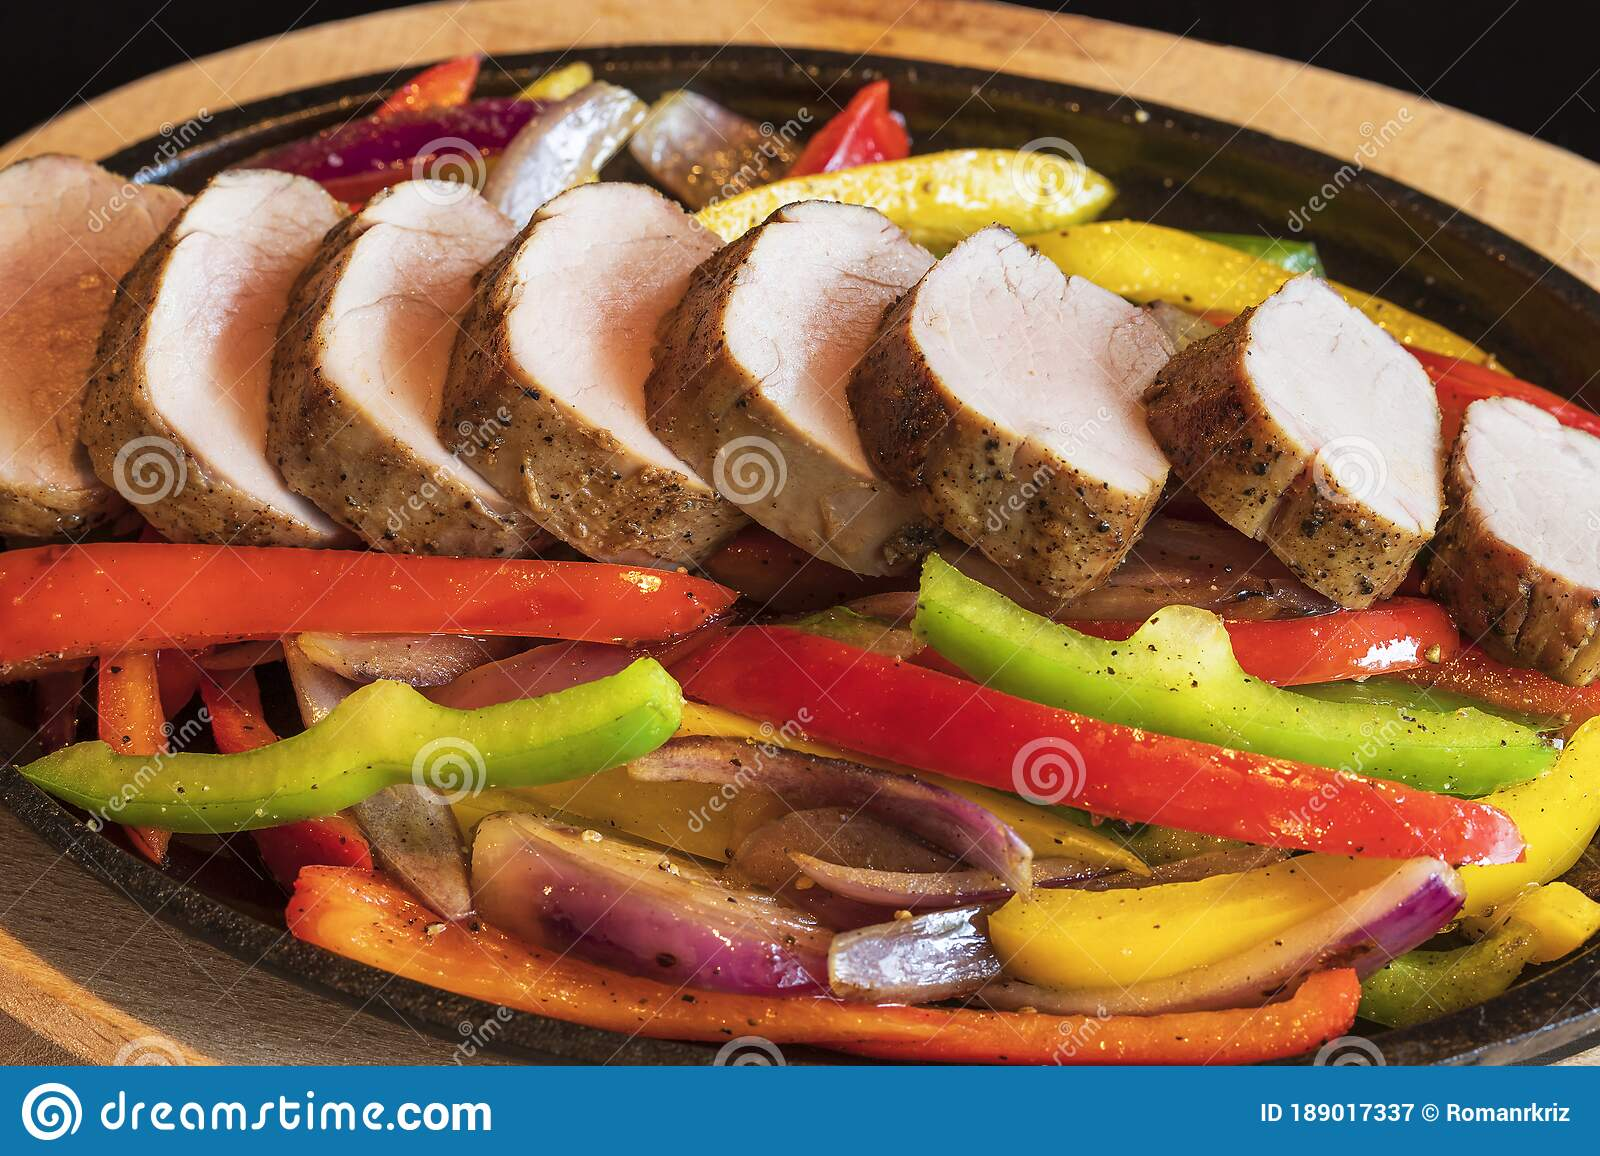 Close Up Of Roasted Pork Tenderloin Medallions With Grilled Vegetables On A Hot Pan The Food Is Isolated On A Black Background Stock Image Image Of Juicy Prepared 189017337